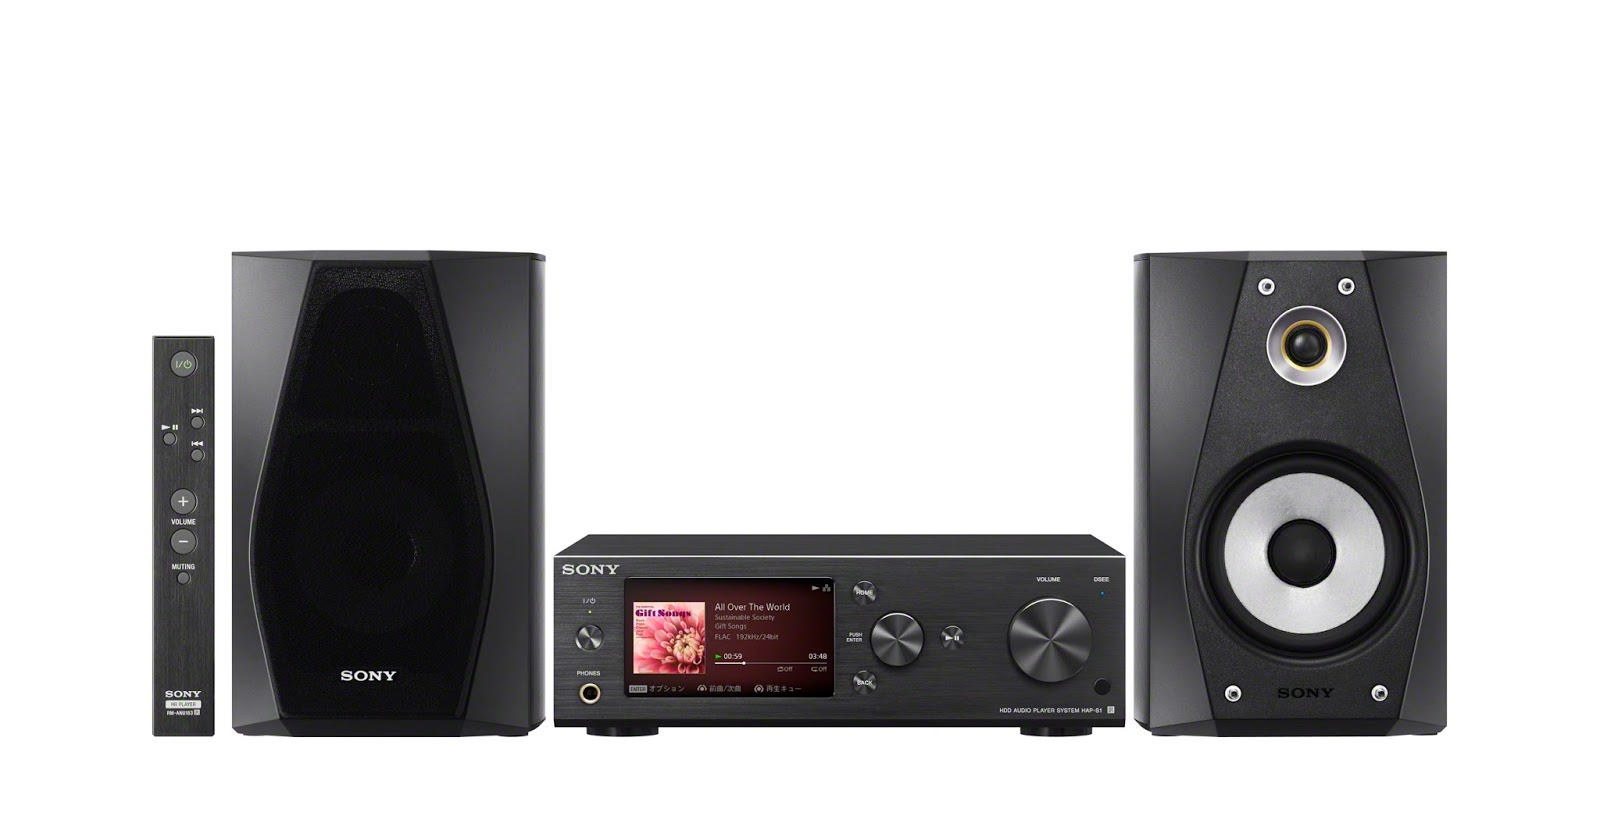 Sony HD Audio Components